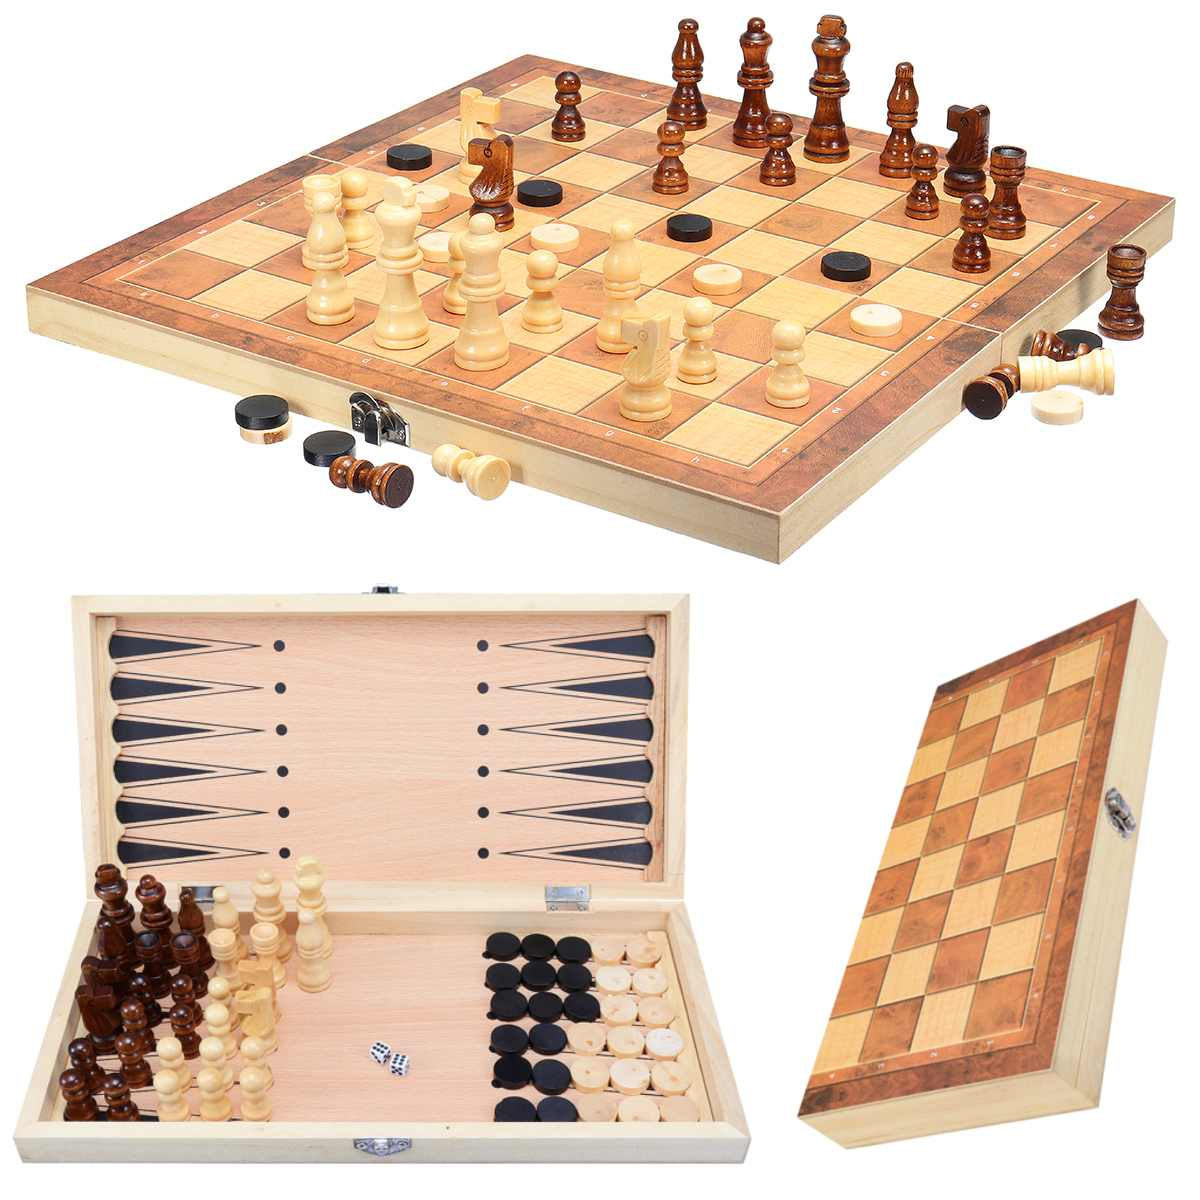 34 X 34cm Folding Chessboard Wooden Chess Board Box Educational Magnetic Chessmen Set Portable Entertainment Desktop Chess Game